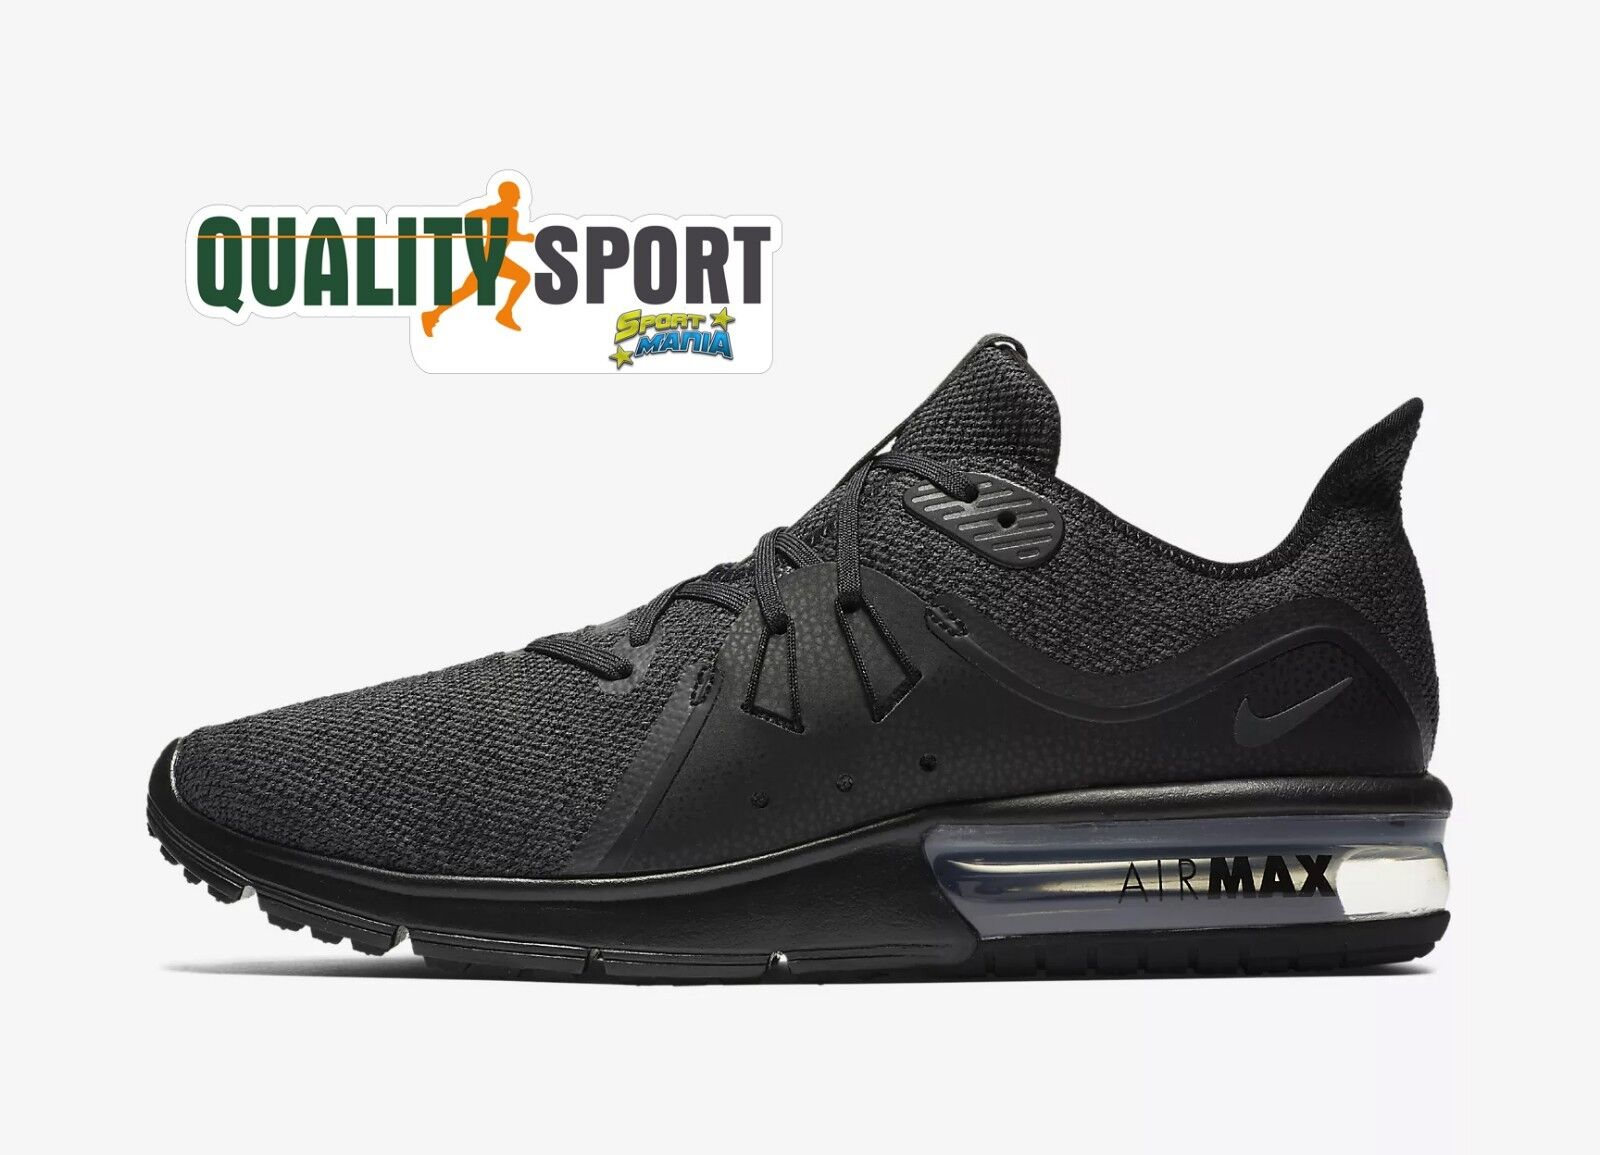 Nike Air Max Sequent 3 black shoes shoes men Sportive Sneakers 921694 010